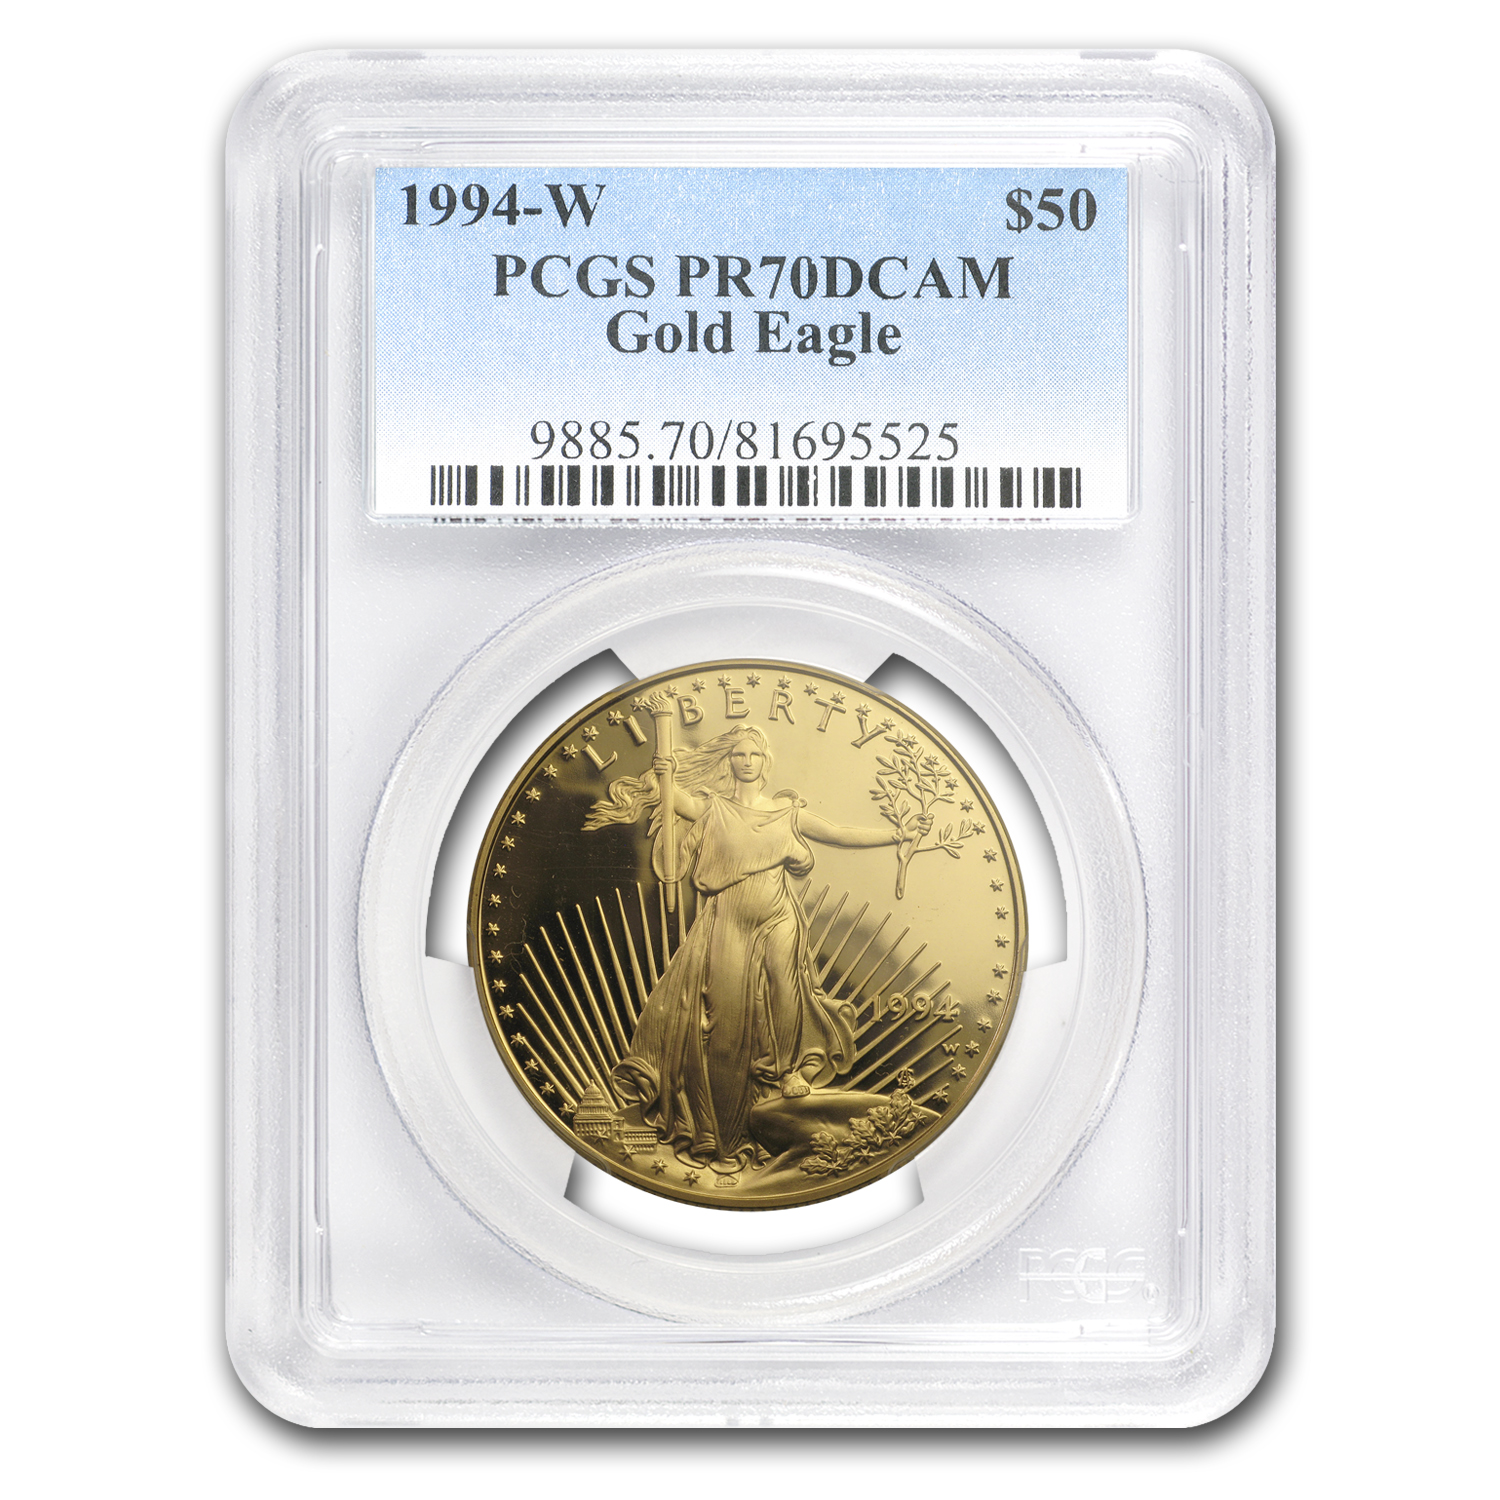 1994-W 1 oz Proof Gold American Eagle PR-70 PCGS